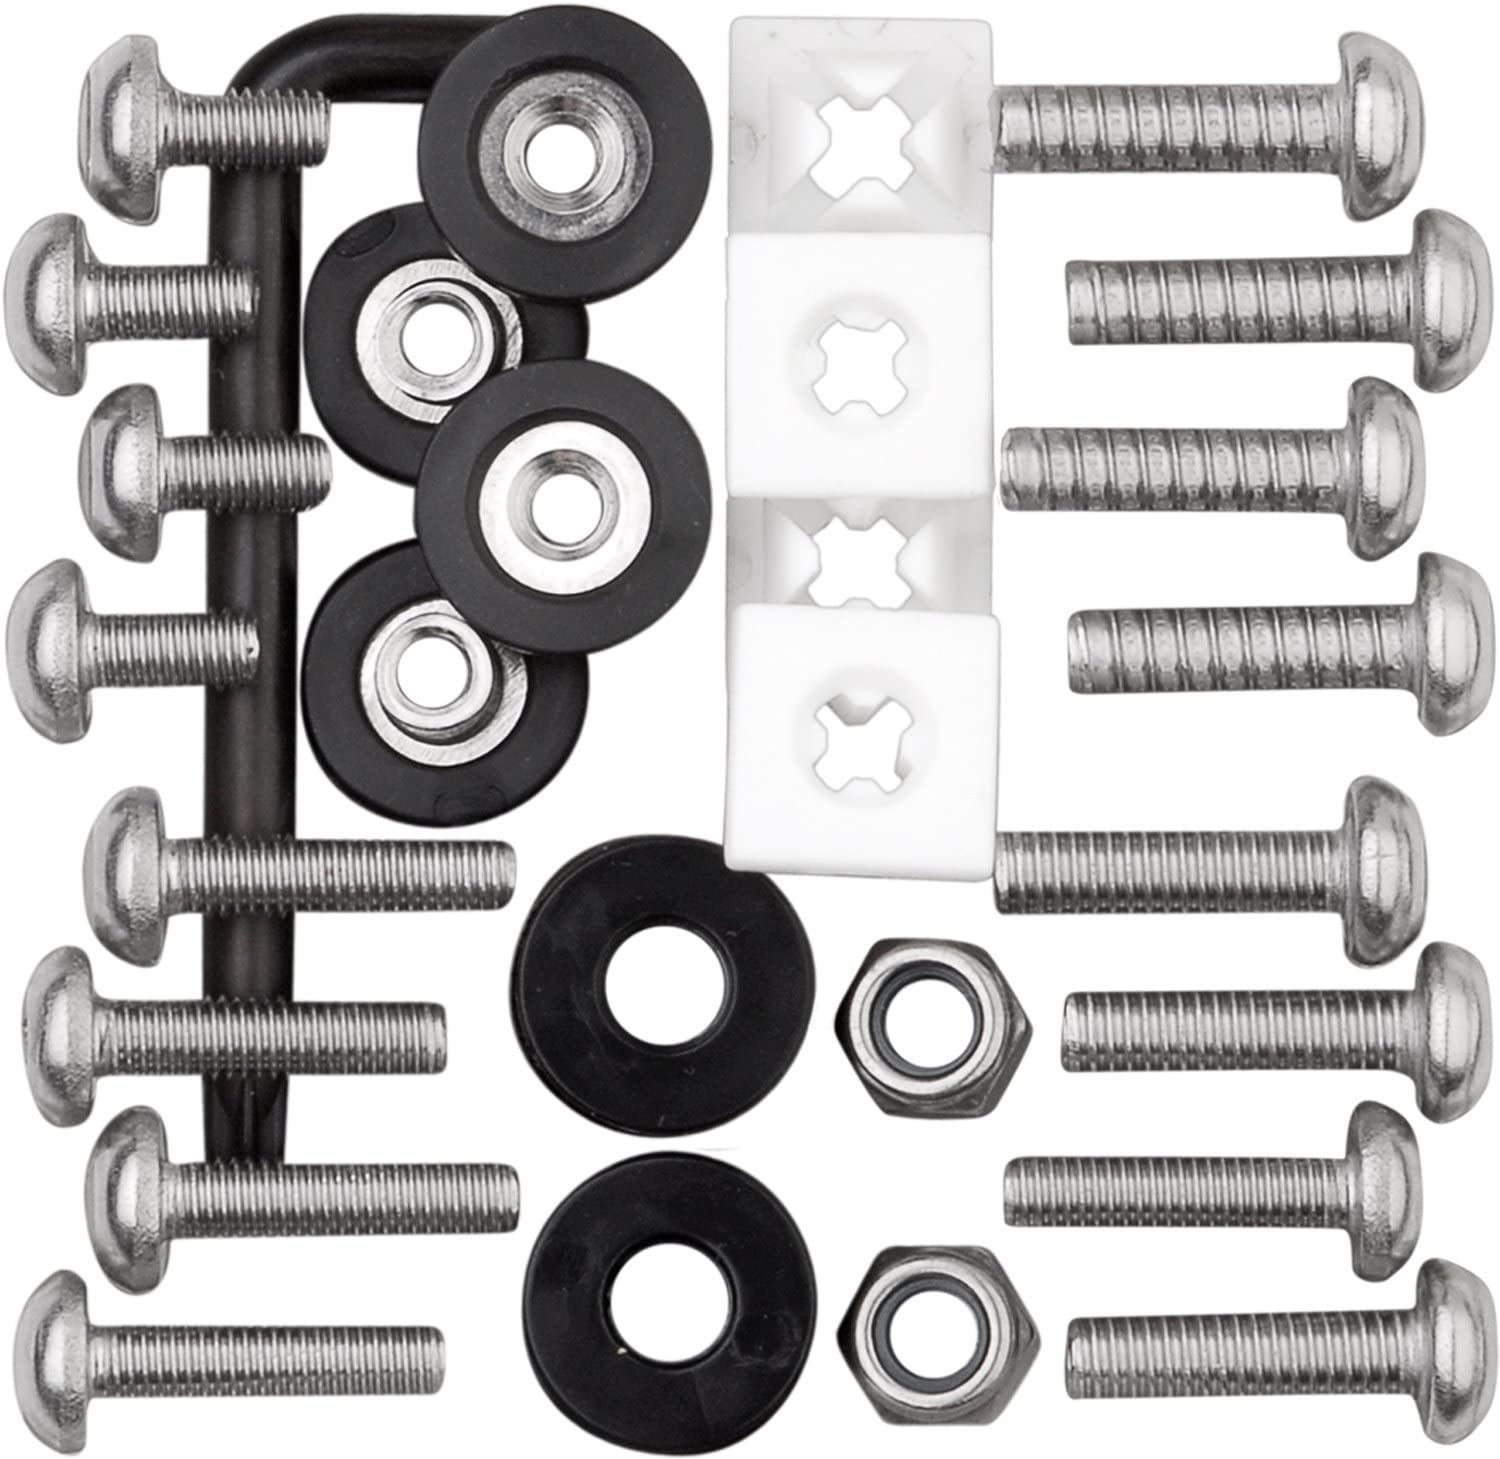 Cruiser Accessories 81500 Locking Fasteners License Plate Frame Hardware Ultimate Kit-Stainless Star Pin